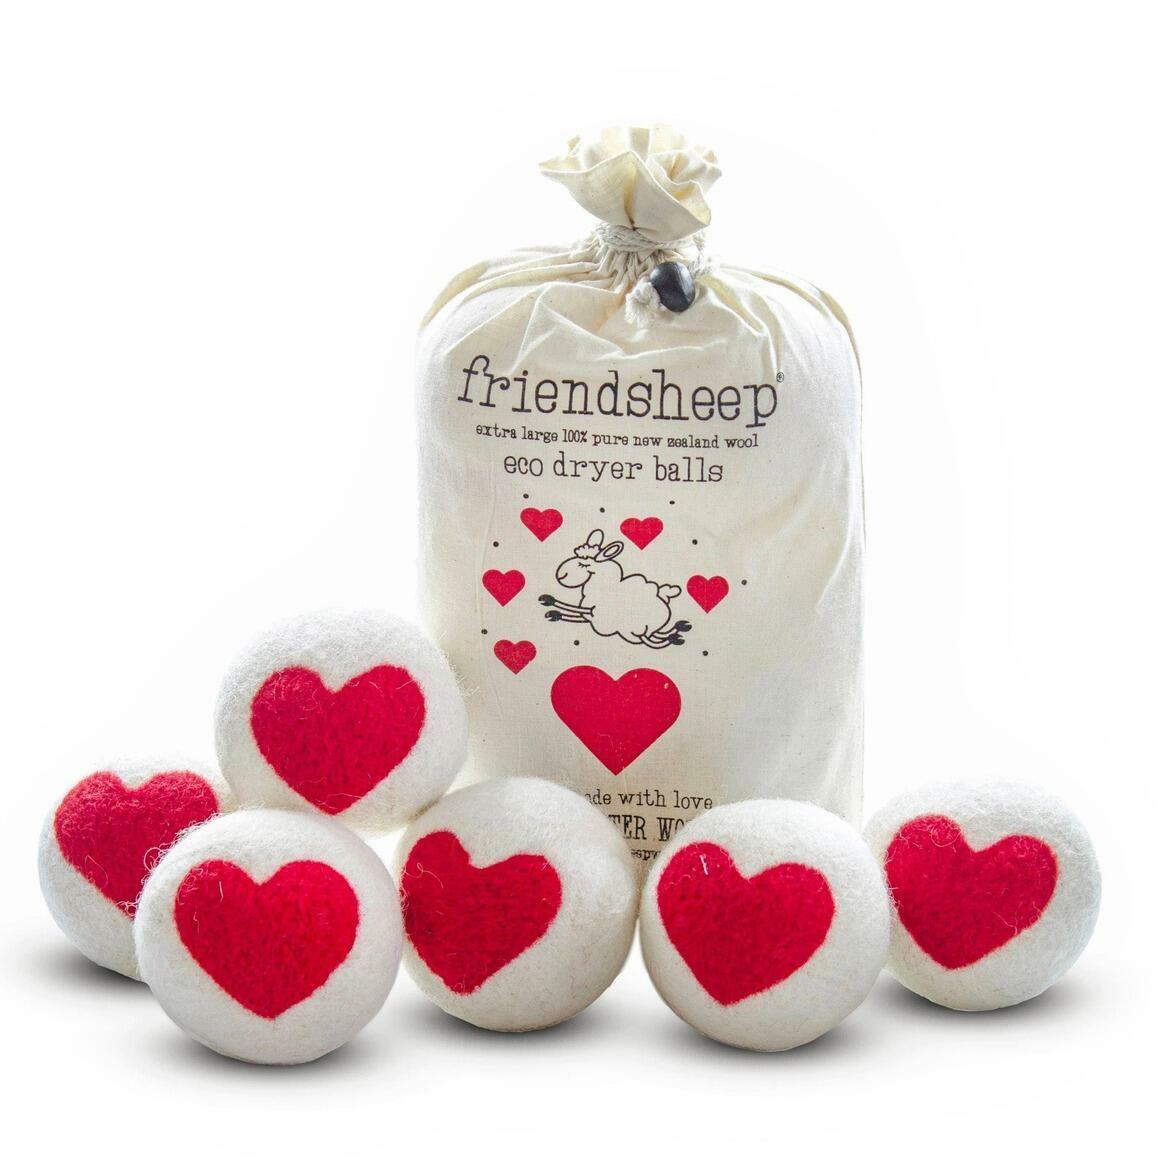 One Heart Eco Dryer Balls - Limited Edition   Trada Marketplace